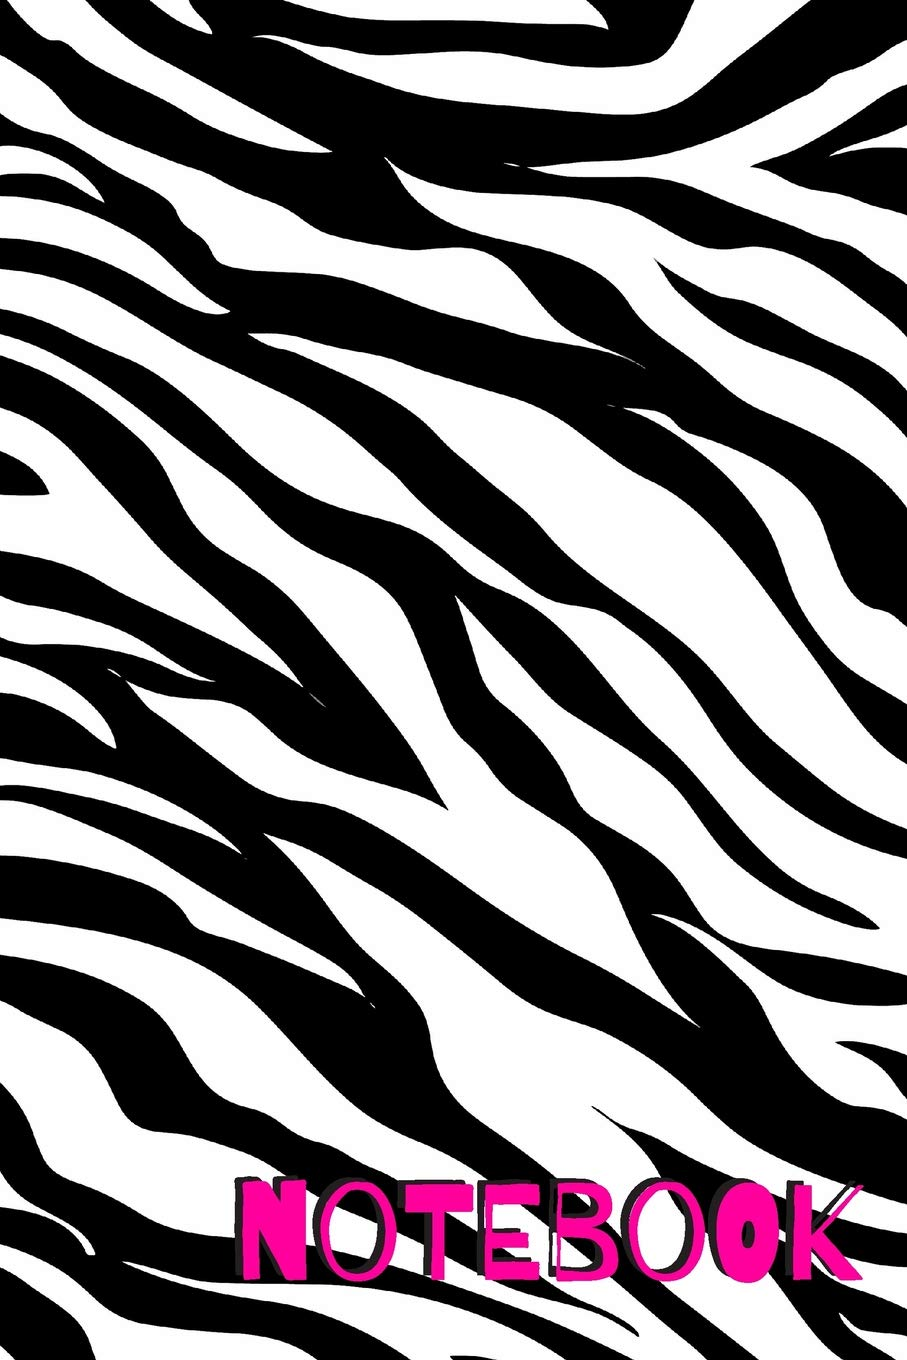 Amazon.com: Notebook: Journal / Notebook With Zebra Stripes.